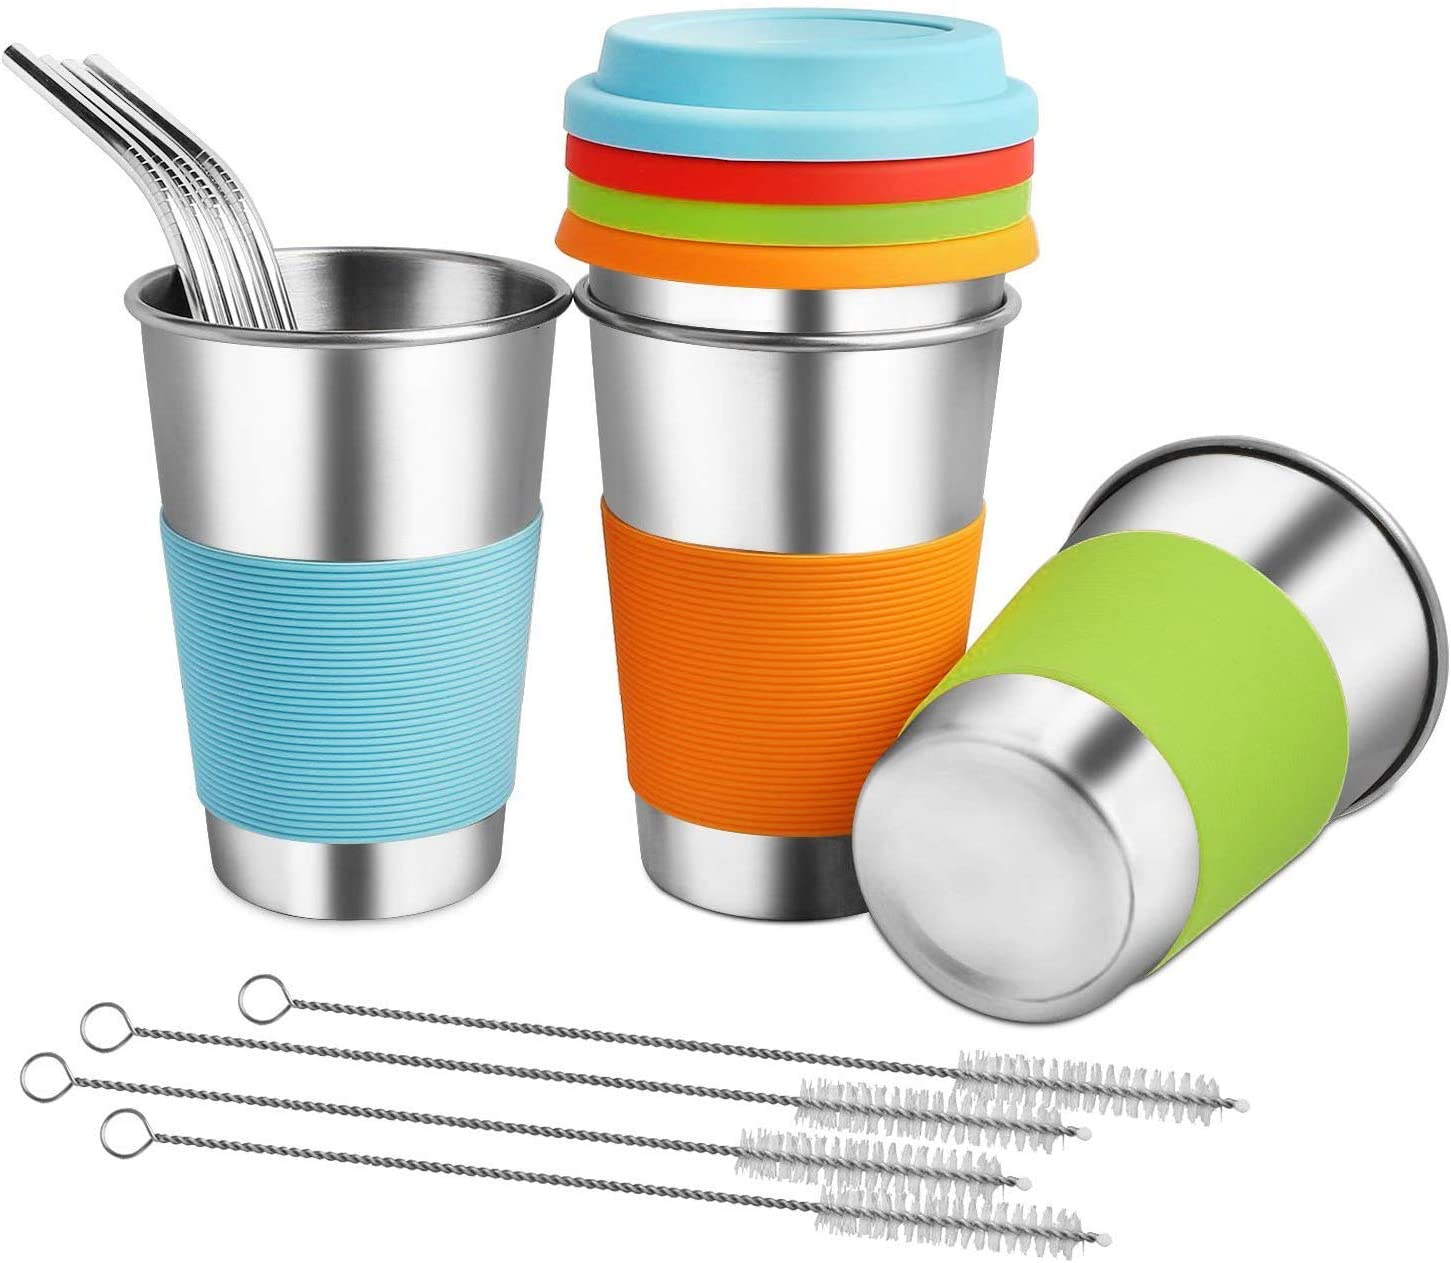 Kids Cups with Lids and 4 years warranty - Save money Sili Straws Stainless ARKTEK